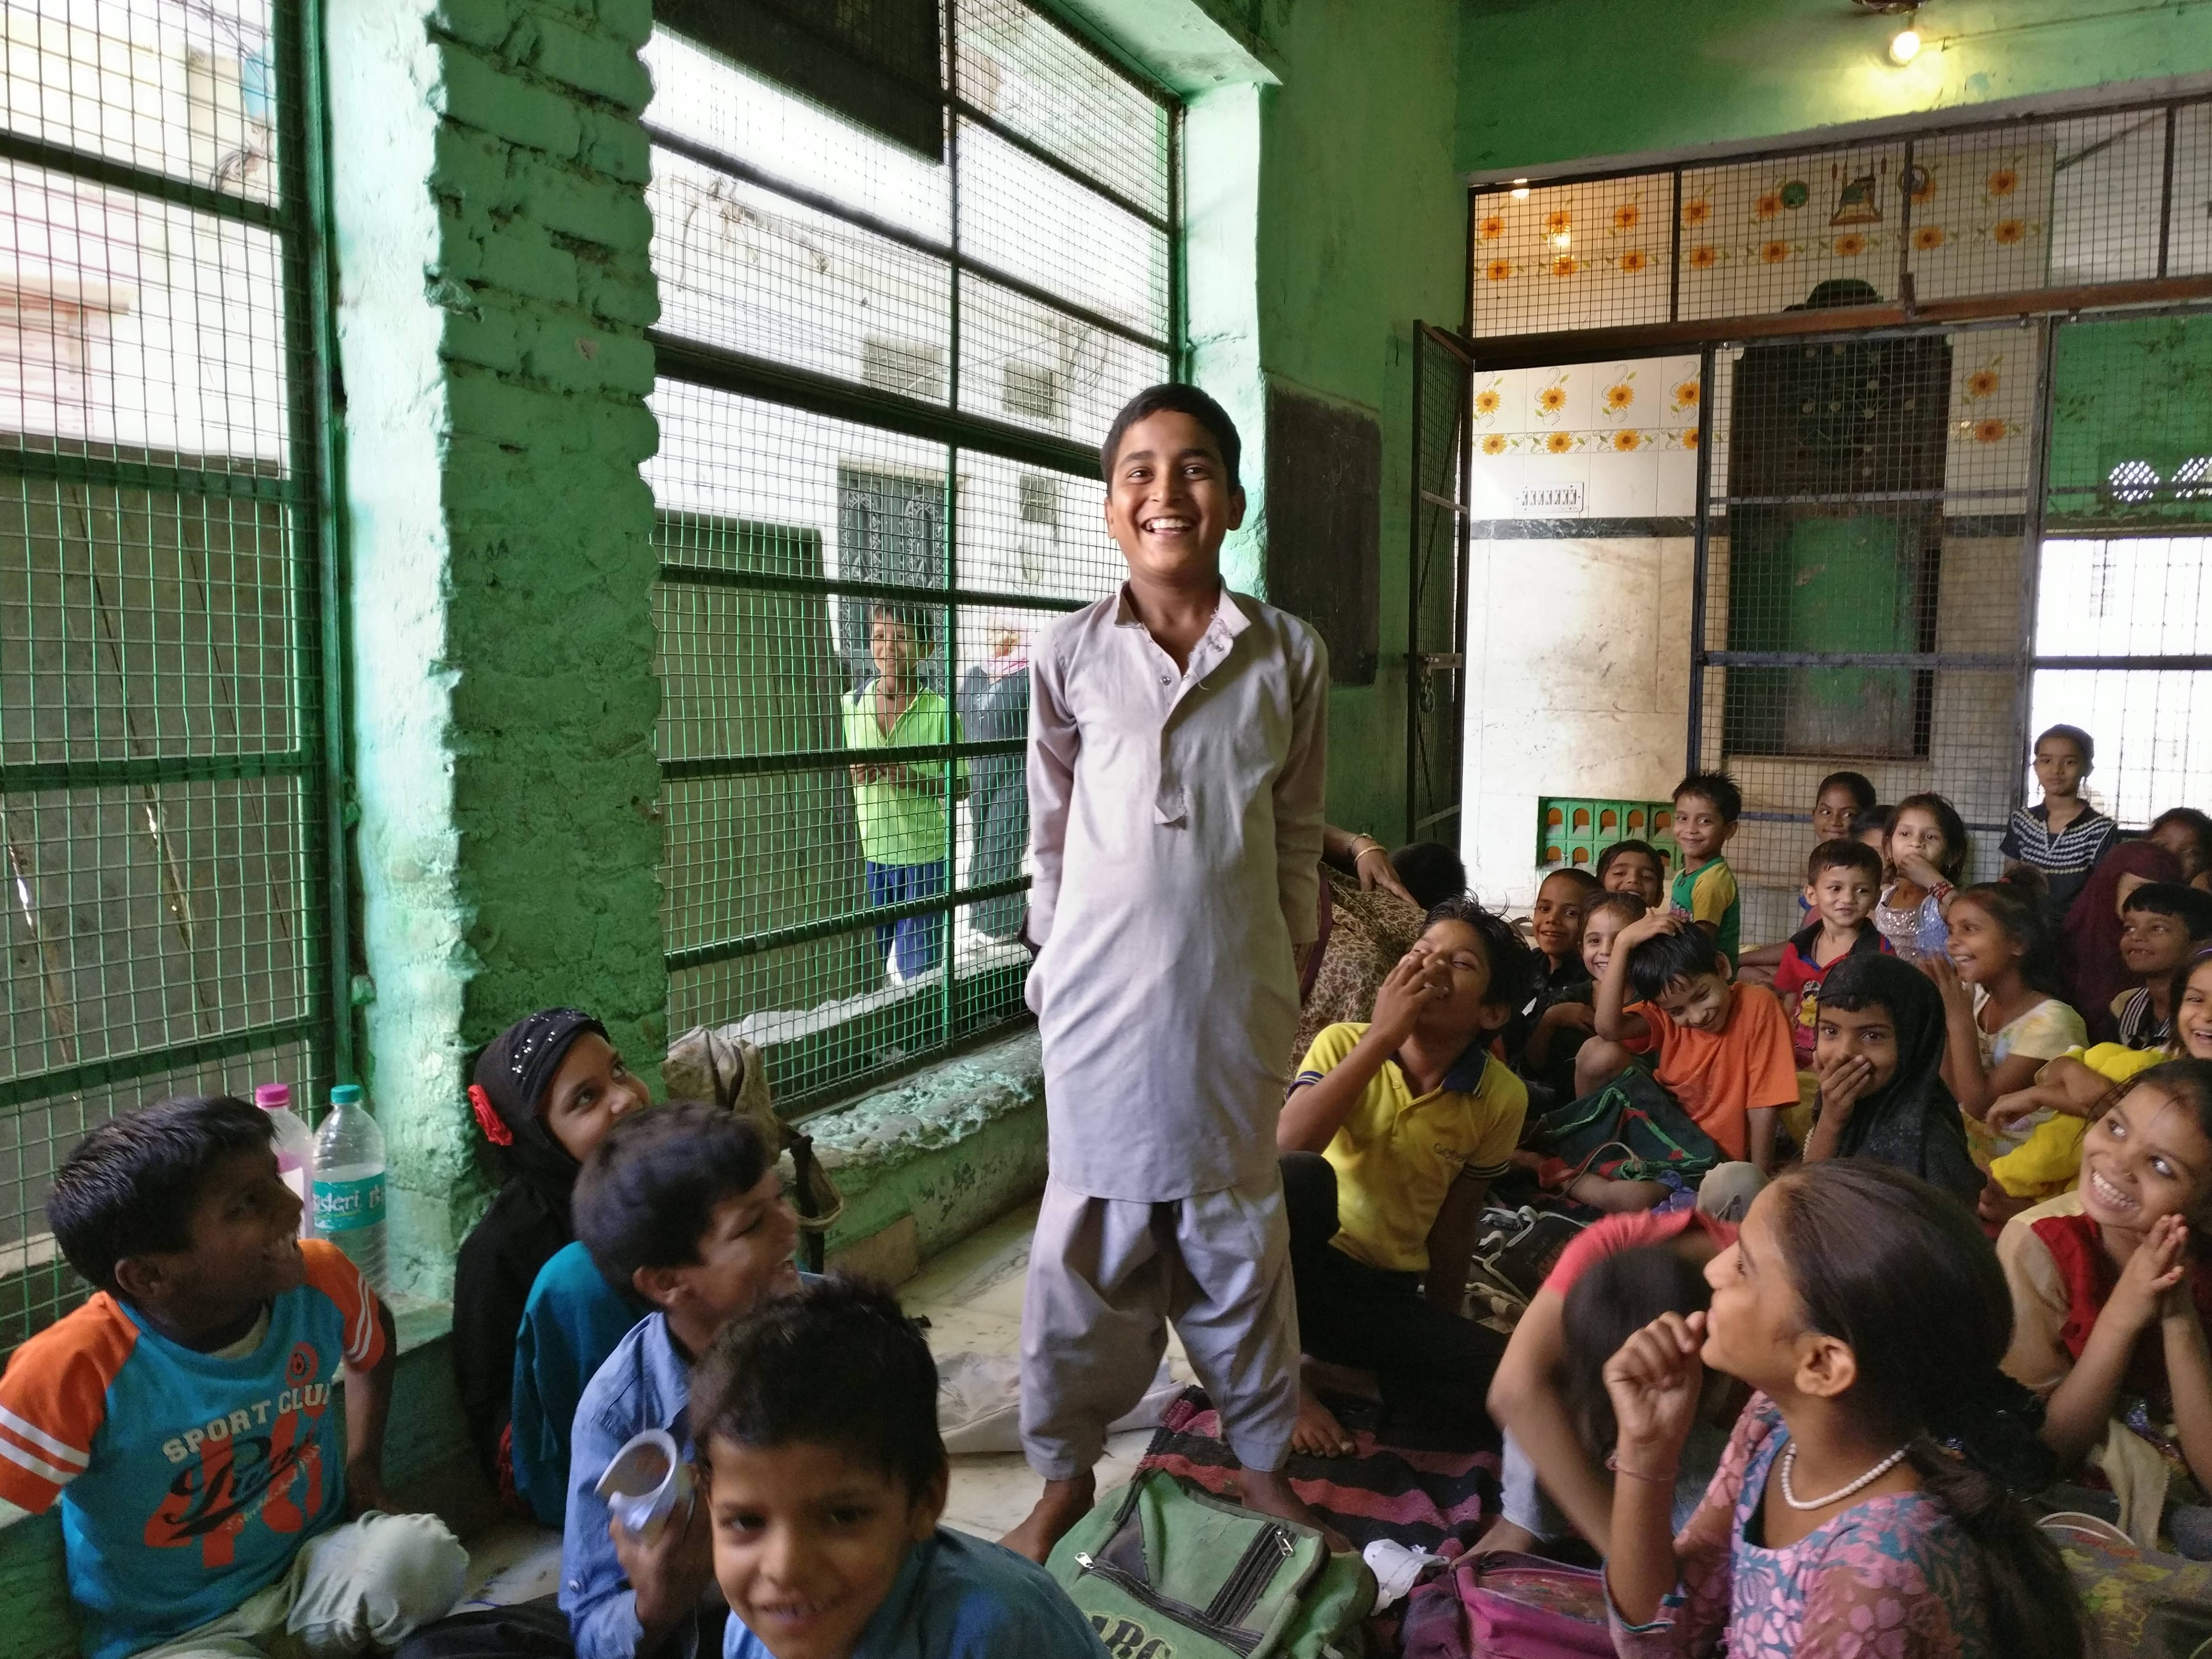 Rayan Qureshi moved to the already crowded dargah school at Haji Colony after his own school merged with another.